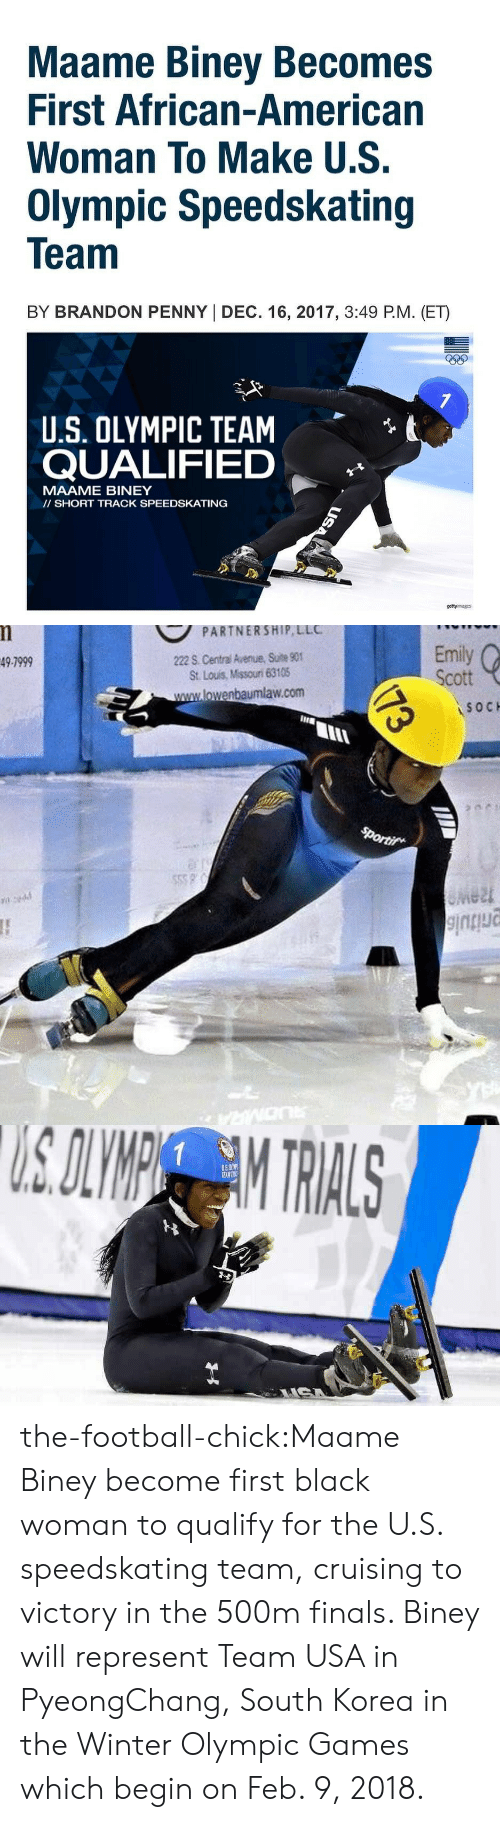 cruising: Maame Biney Becomes  First African-American  Woman To Make U.S.  Olympic Speedskating  Team  BY BRANDON PENNY I DEC. 16, 2017, 3:49 P.M. (ET)  eep  t  U.S. OLYMPIC TEAM  QUALIFIED  MAAME BINEY  II SHORT TRACK SPEEDSKATING  gettyrmages   PARTNERSHIP LLC  222 S. Central Avenue, Suite 90  St. Lous, Missouri 63105  Emily  Scott  49-7999  lowenbaumlaw.com  SOC  IIIE  lu  e2t the-football-chick:Maame Biney become first black woman to qualify for the U.S. speedskating team, cruising to victory in the 500m finals. Biney will represent Team USA in PyeongChang, South Korea in the Winter Olympic Games which begin on Feb. 9, 2018.